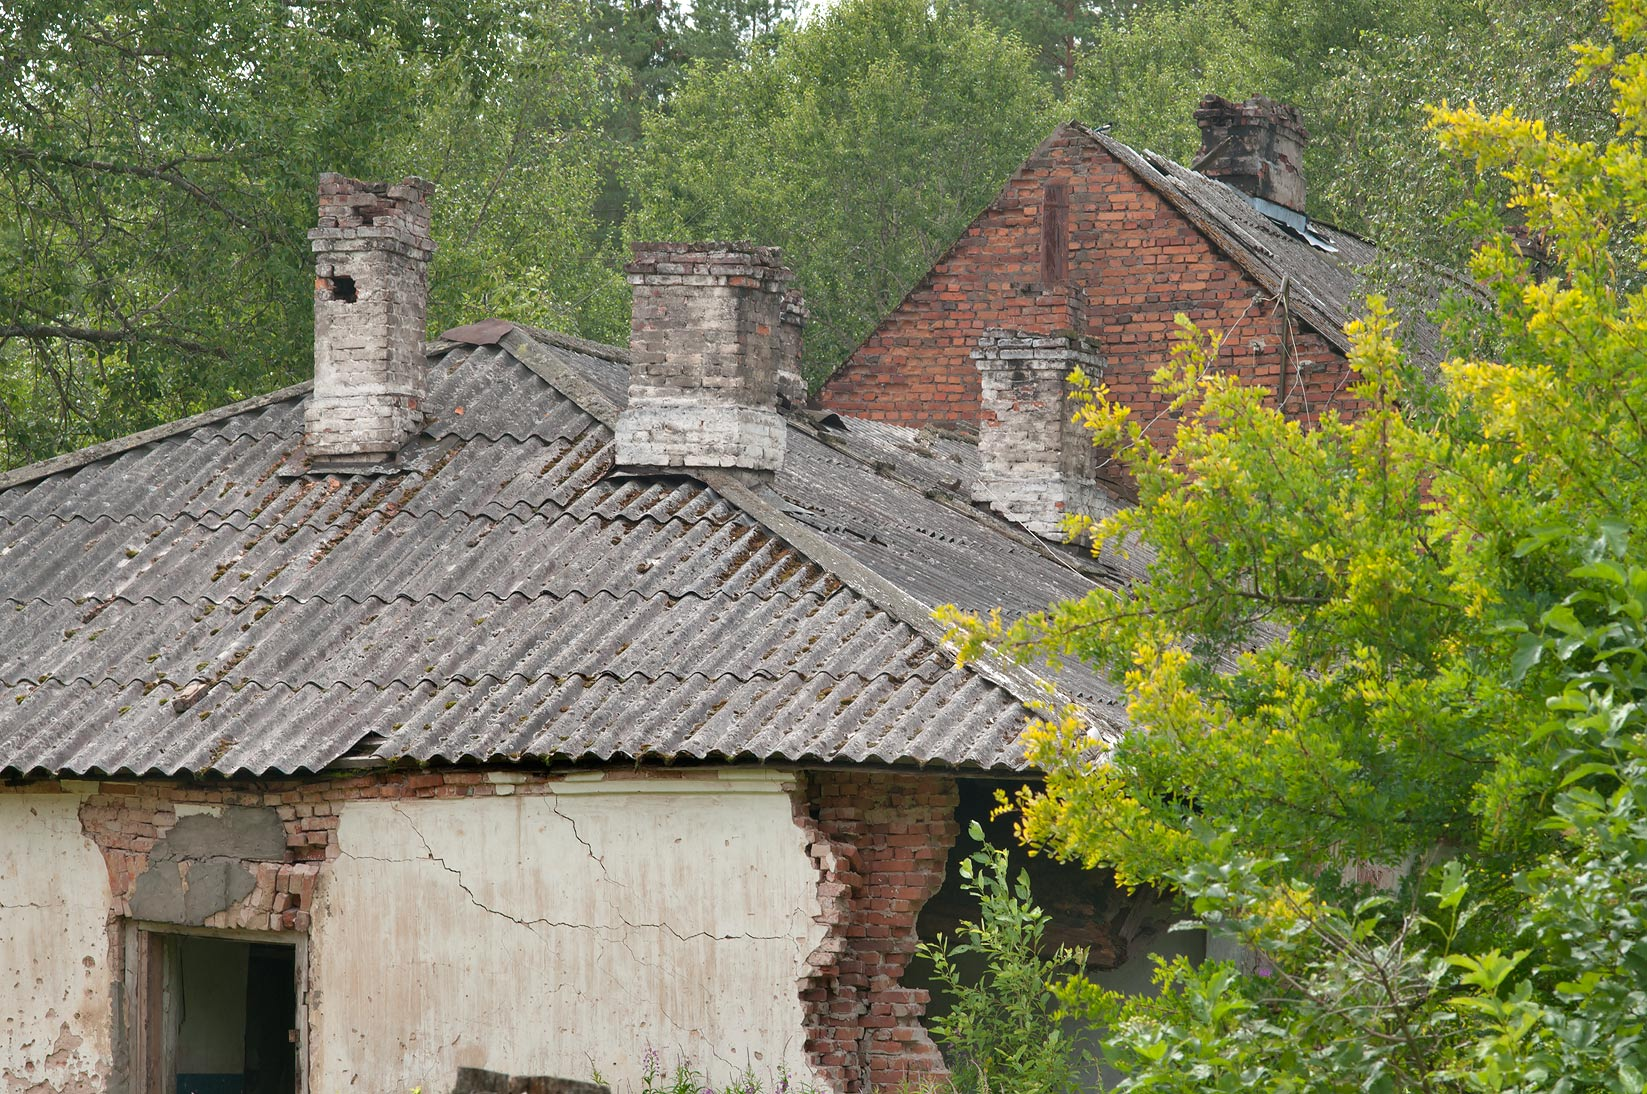 Abandoned village of Kirpichny Zavod (Brick...miles north from St.Petersburg. Russia